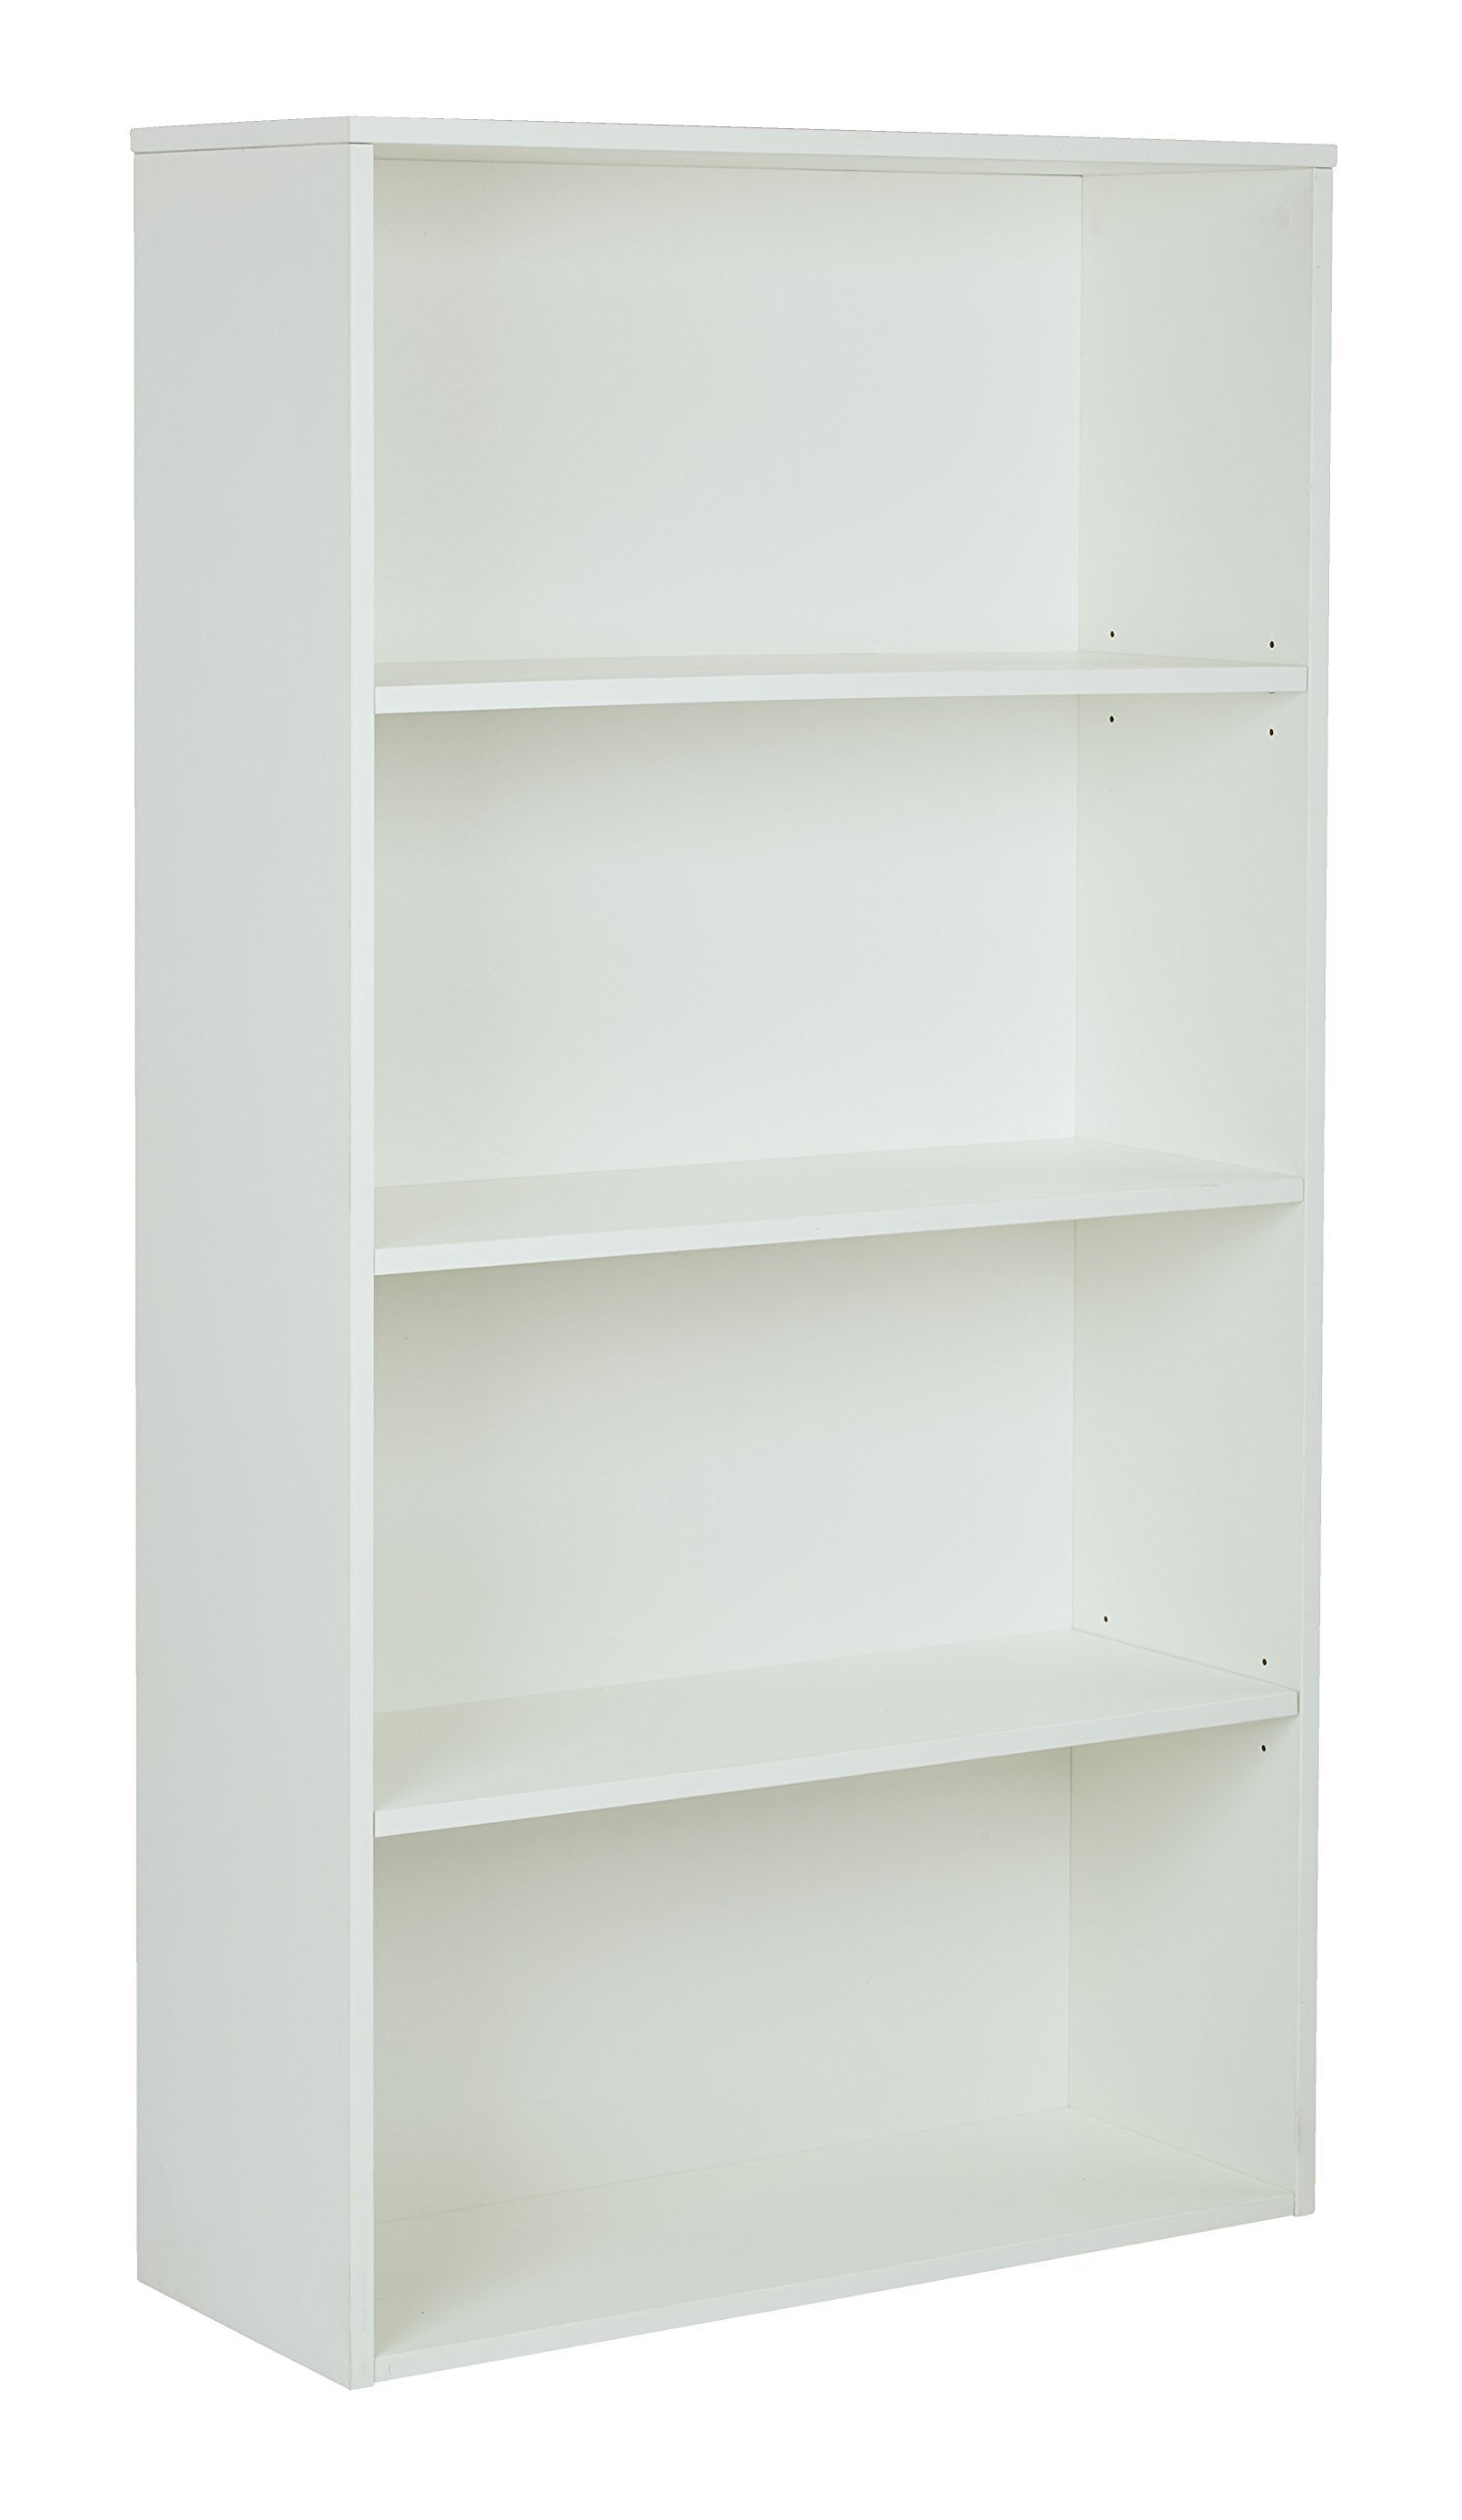 Pro-Line II / OSP Designs Prado 4-Shelf Bookcase with 3/4-Inch Shelves and 2 Adjustable/2 Fixed Shelves, 60-Inch, White